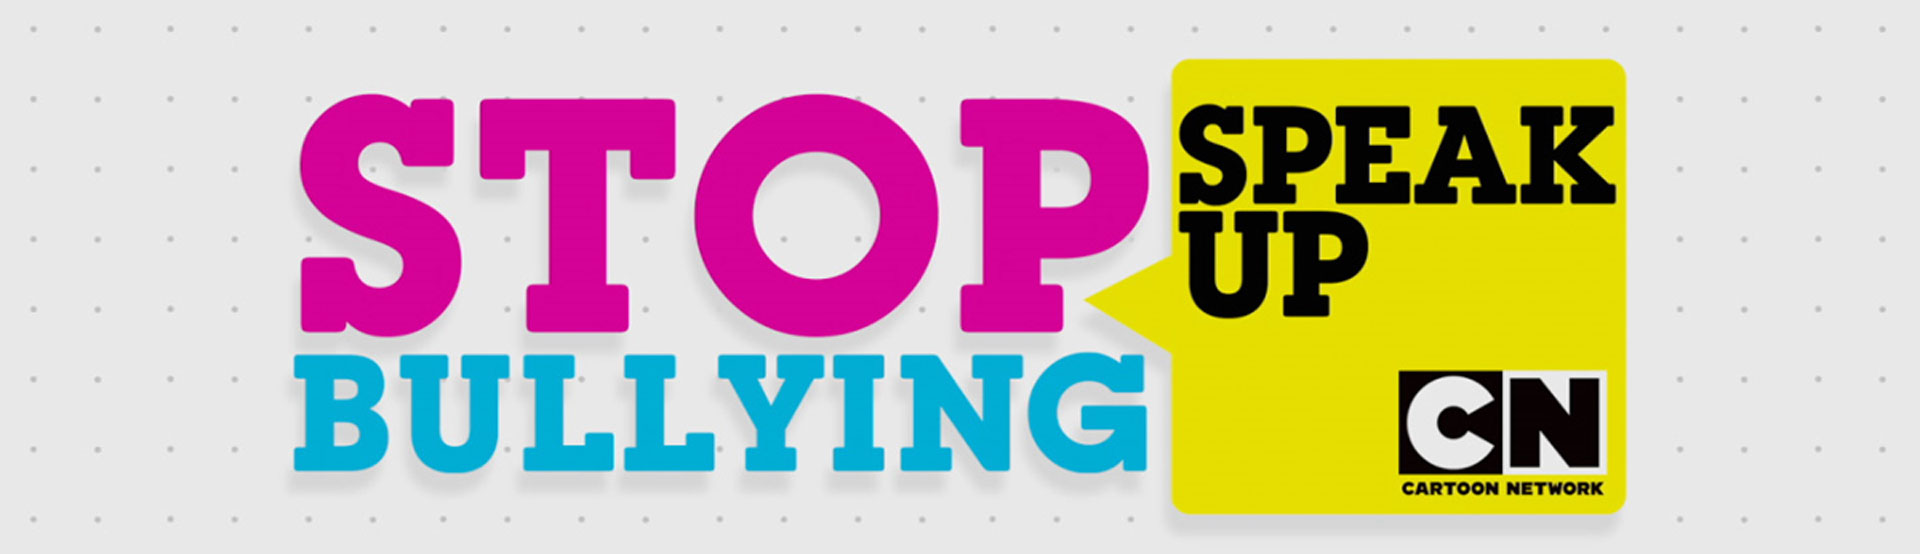 Stop Bullying: Speak Up Campaign